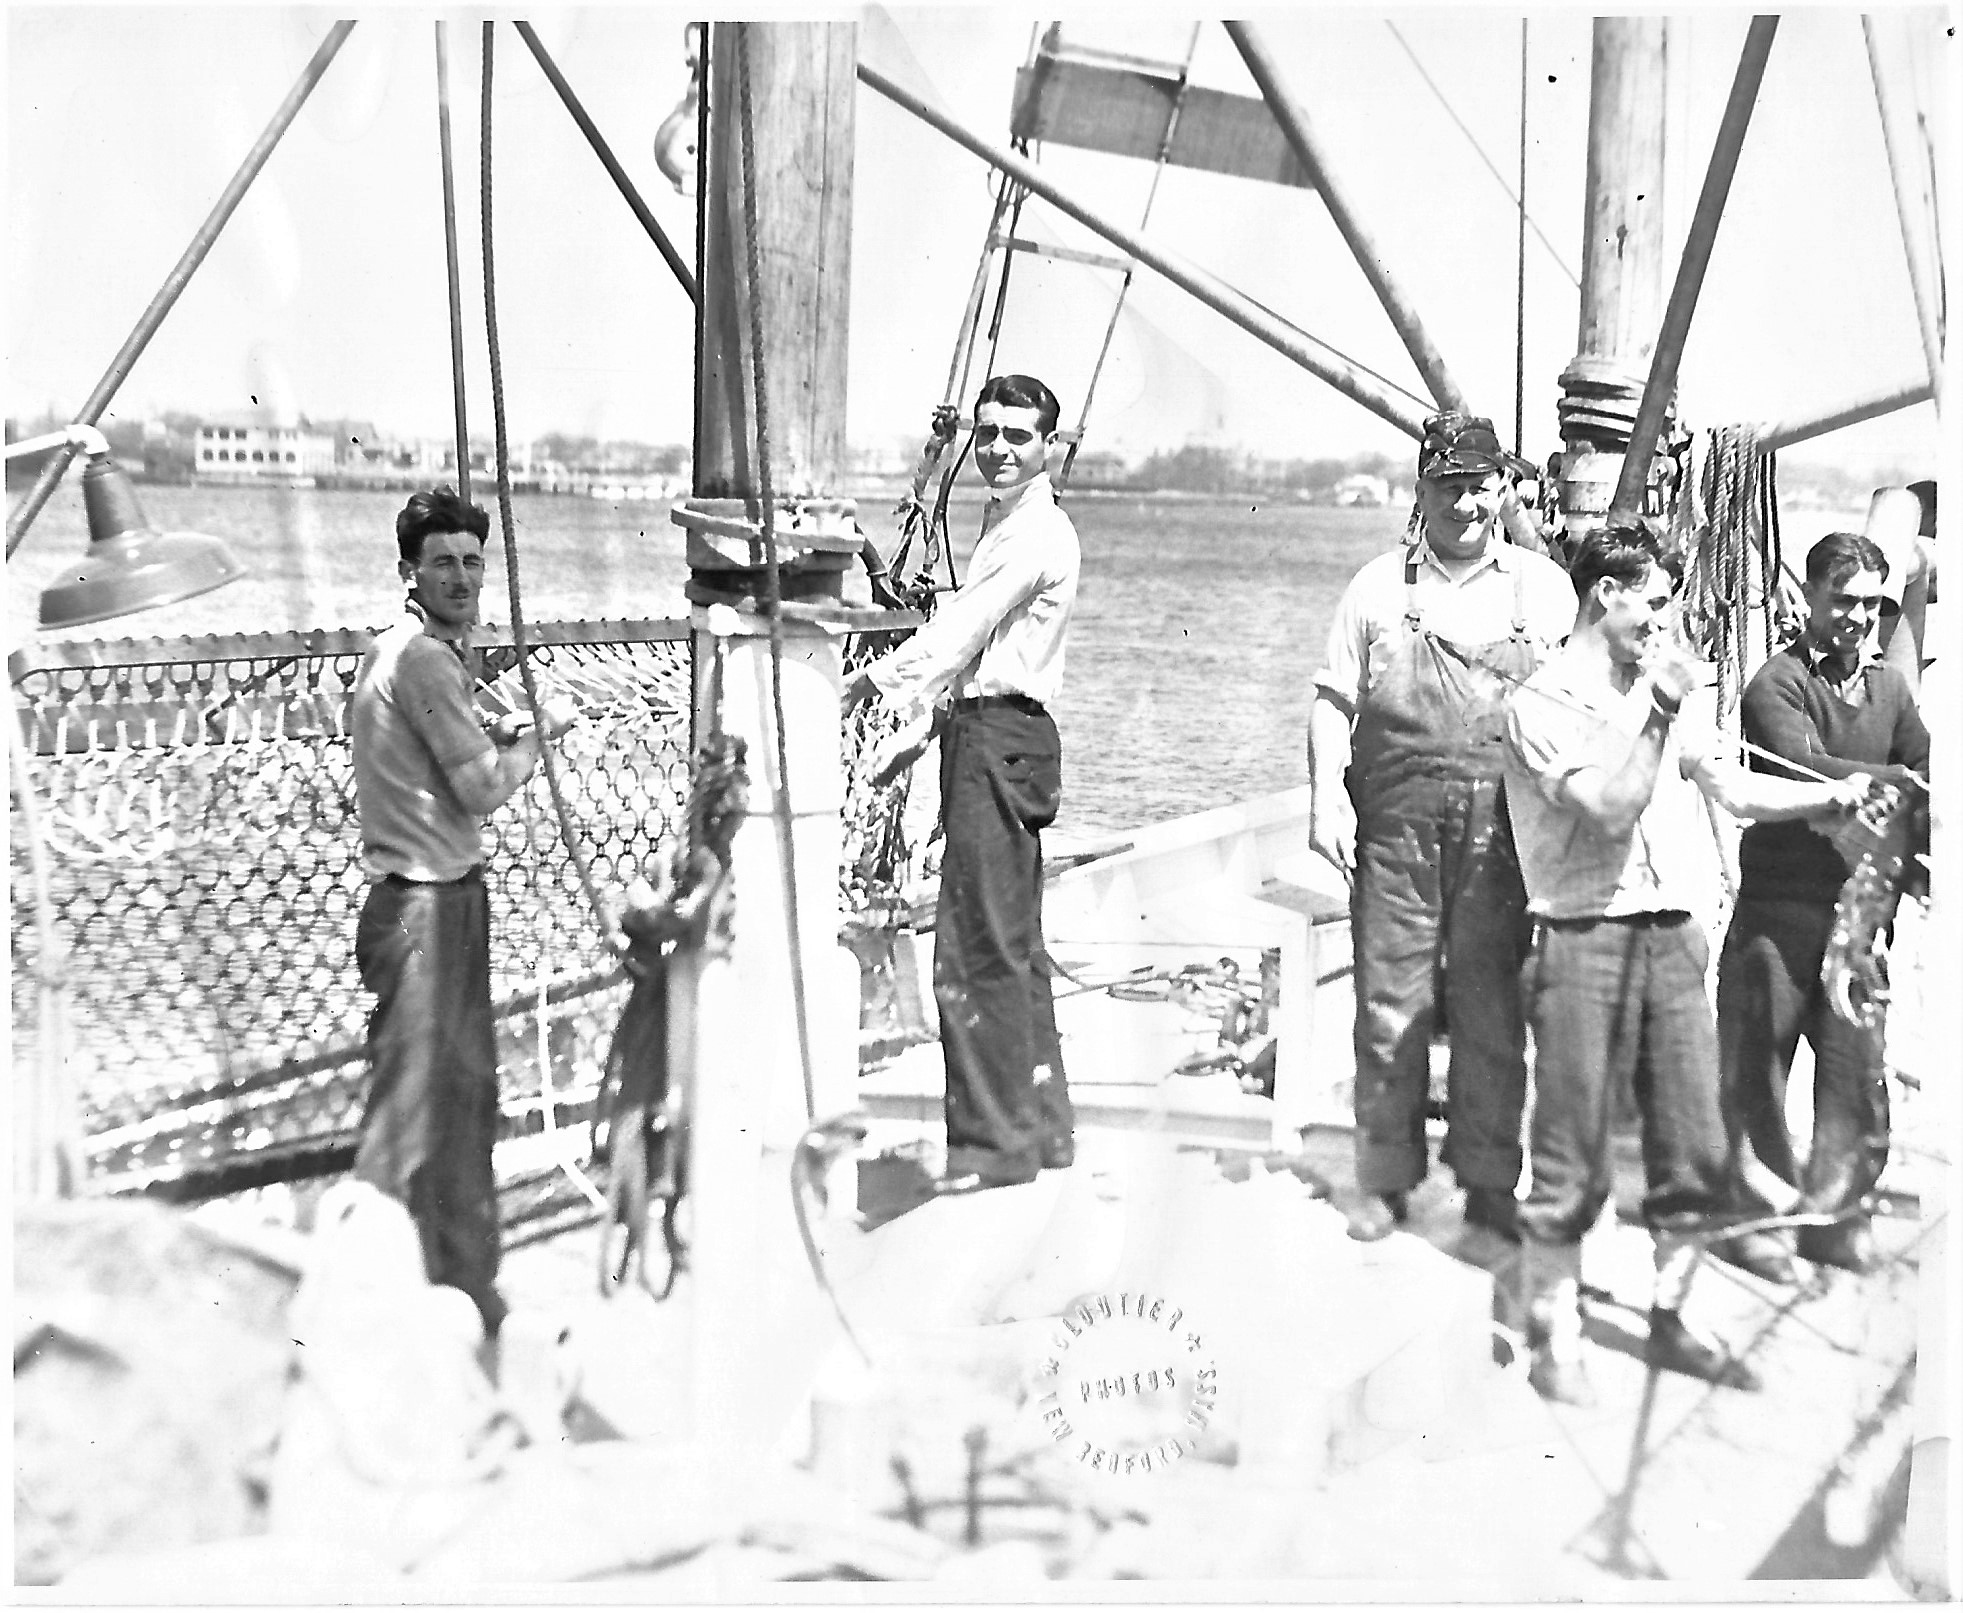 Addie Mae - 1930 or 31 - New Bedford - Repairing Scallop Dredge B&W